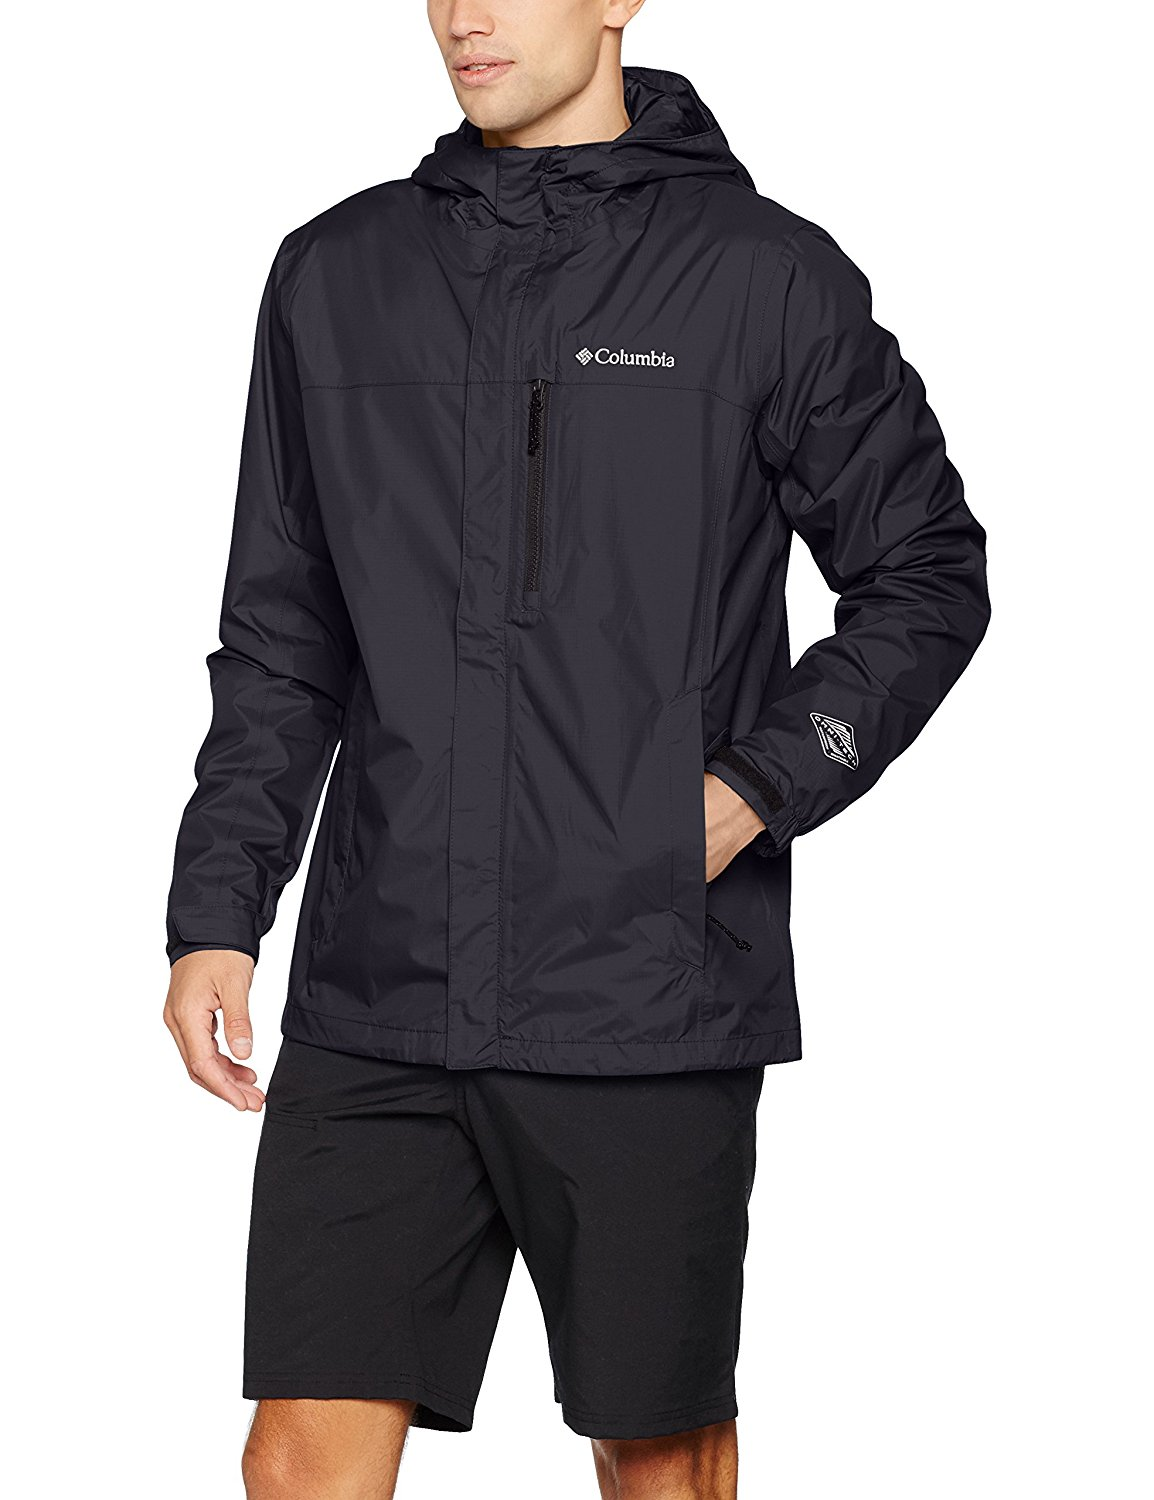 Columbia Men's Pouring Adventure II Jacket